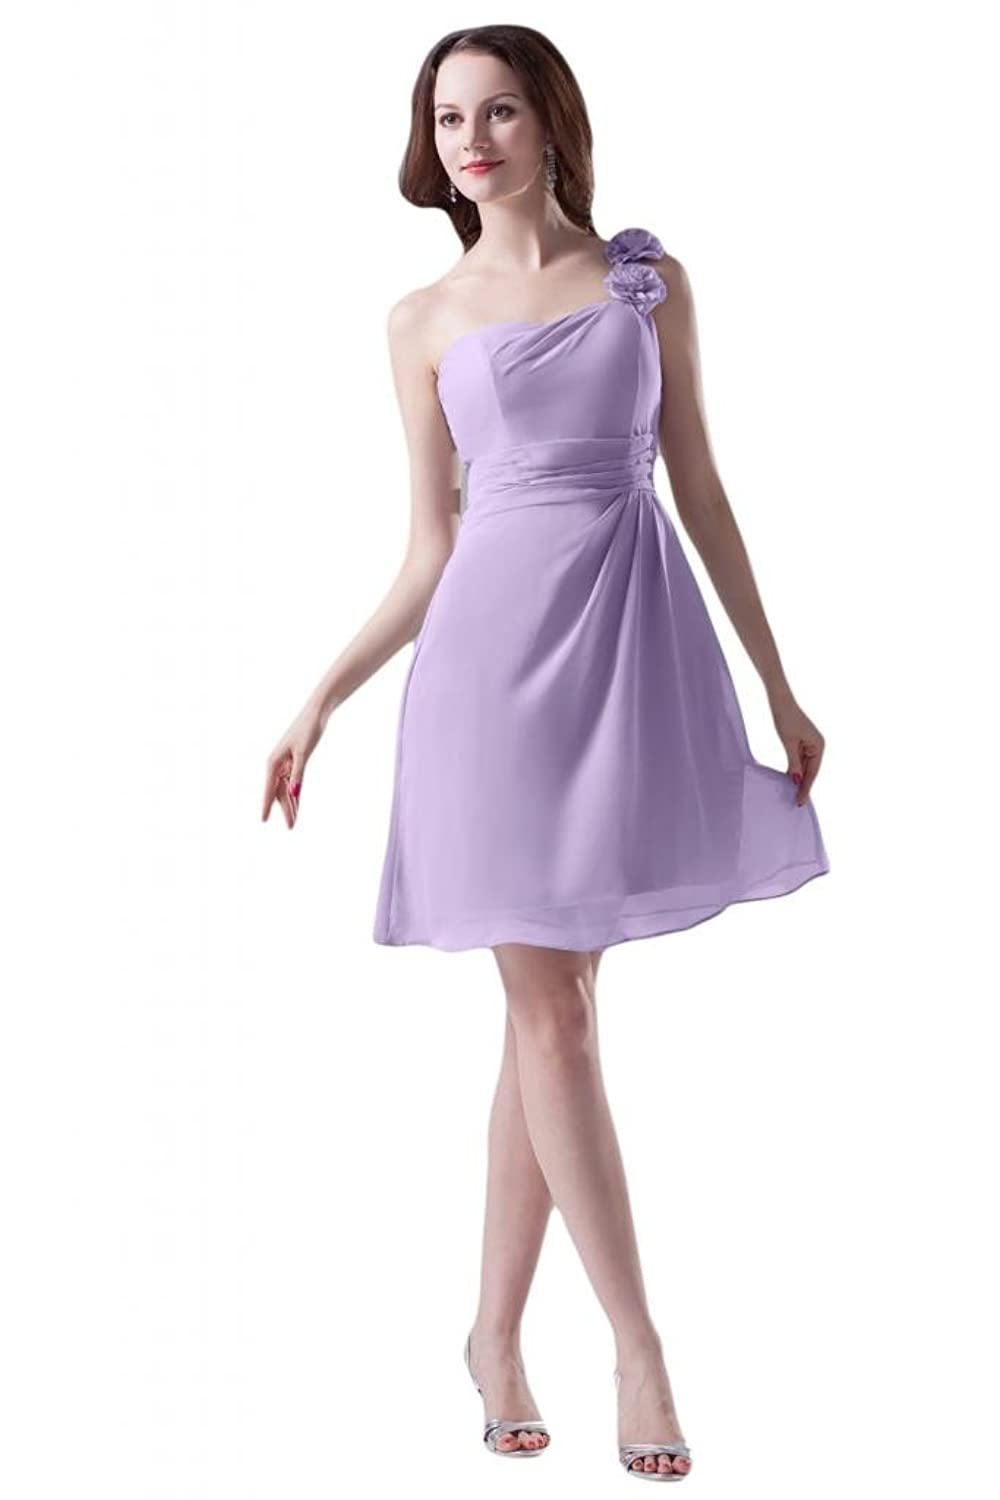 Sunvary Sleeveless Lilac Organza Tulle Party Dresses Cocktail Ball Gowns